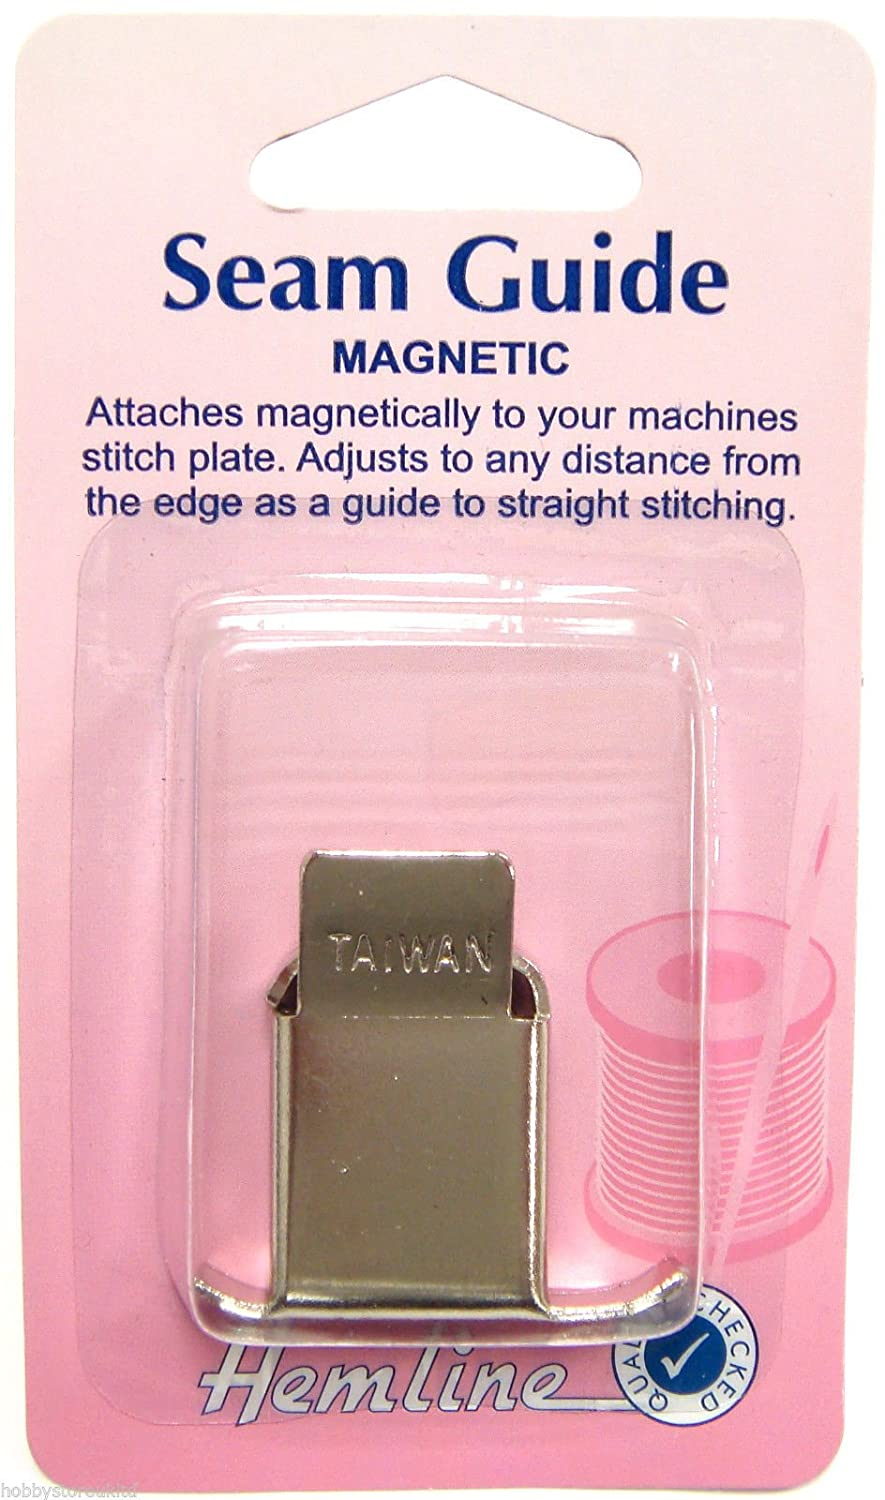 Sewing Machine Seam Guide Magnetic Seam Guide Universal Seams Hem Plate Hemline